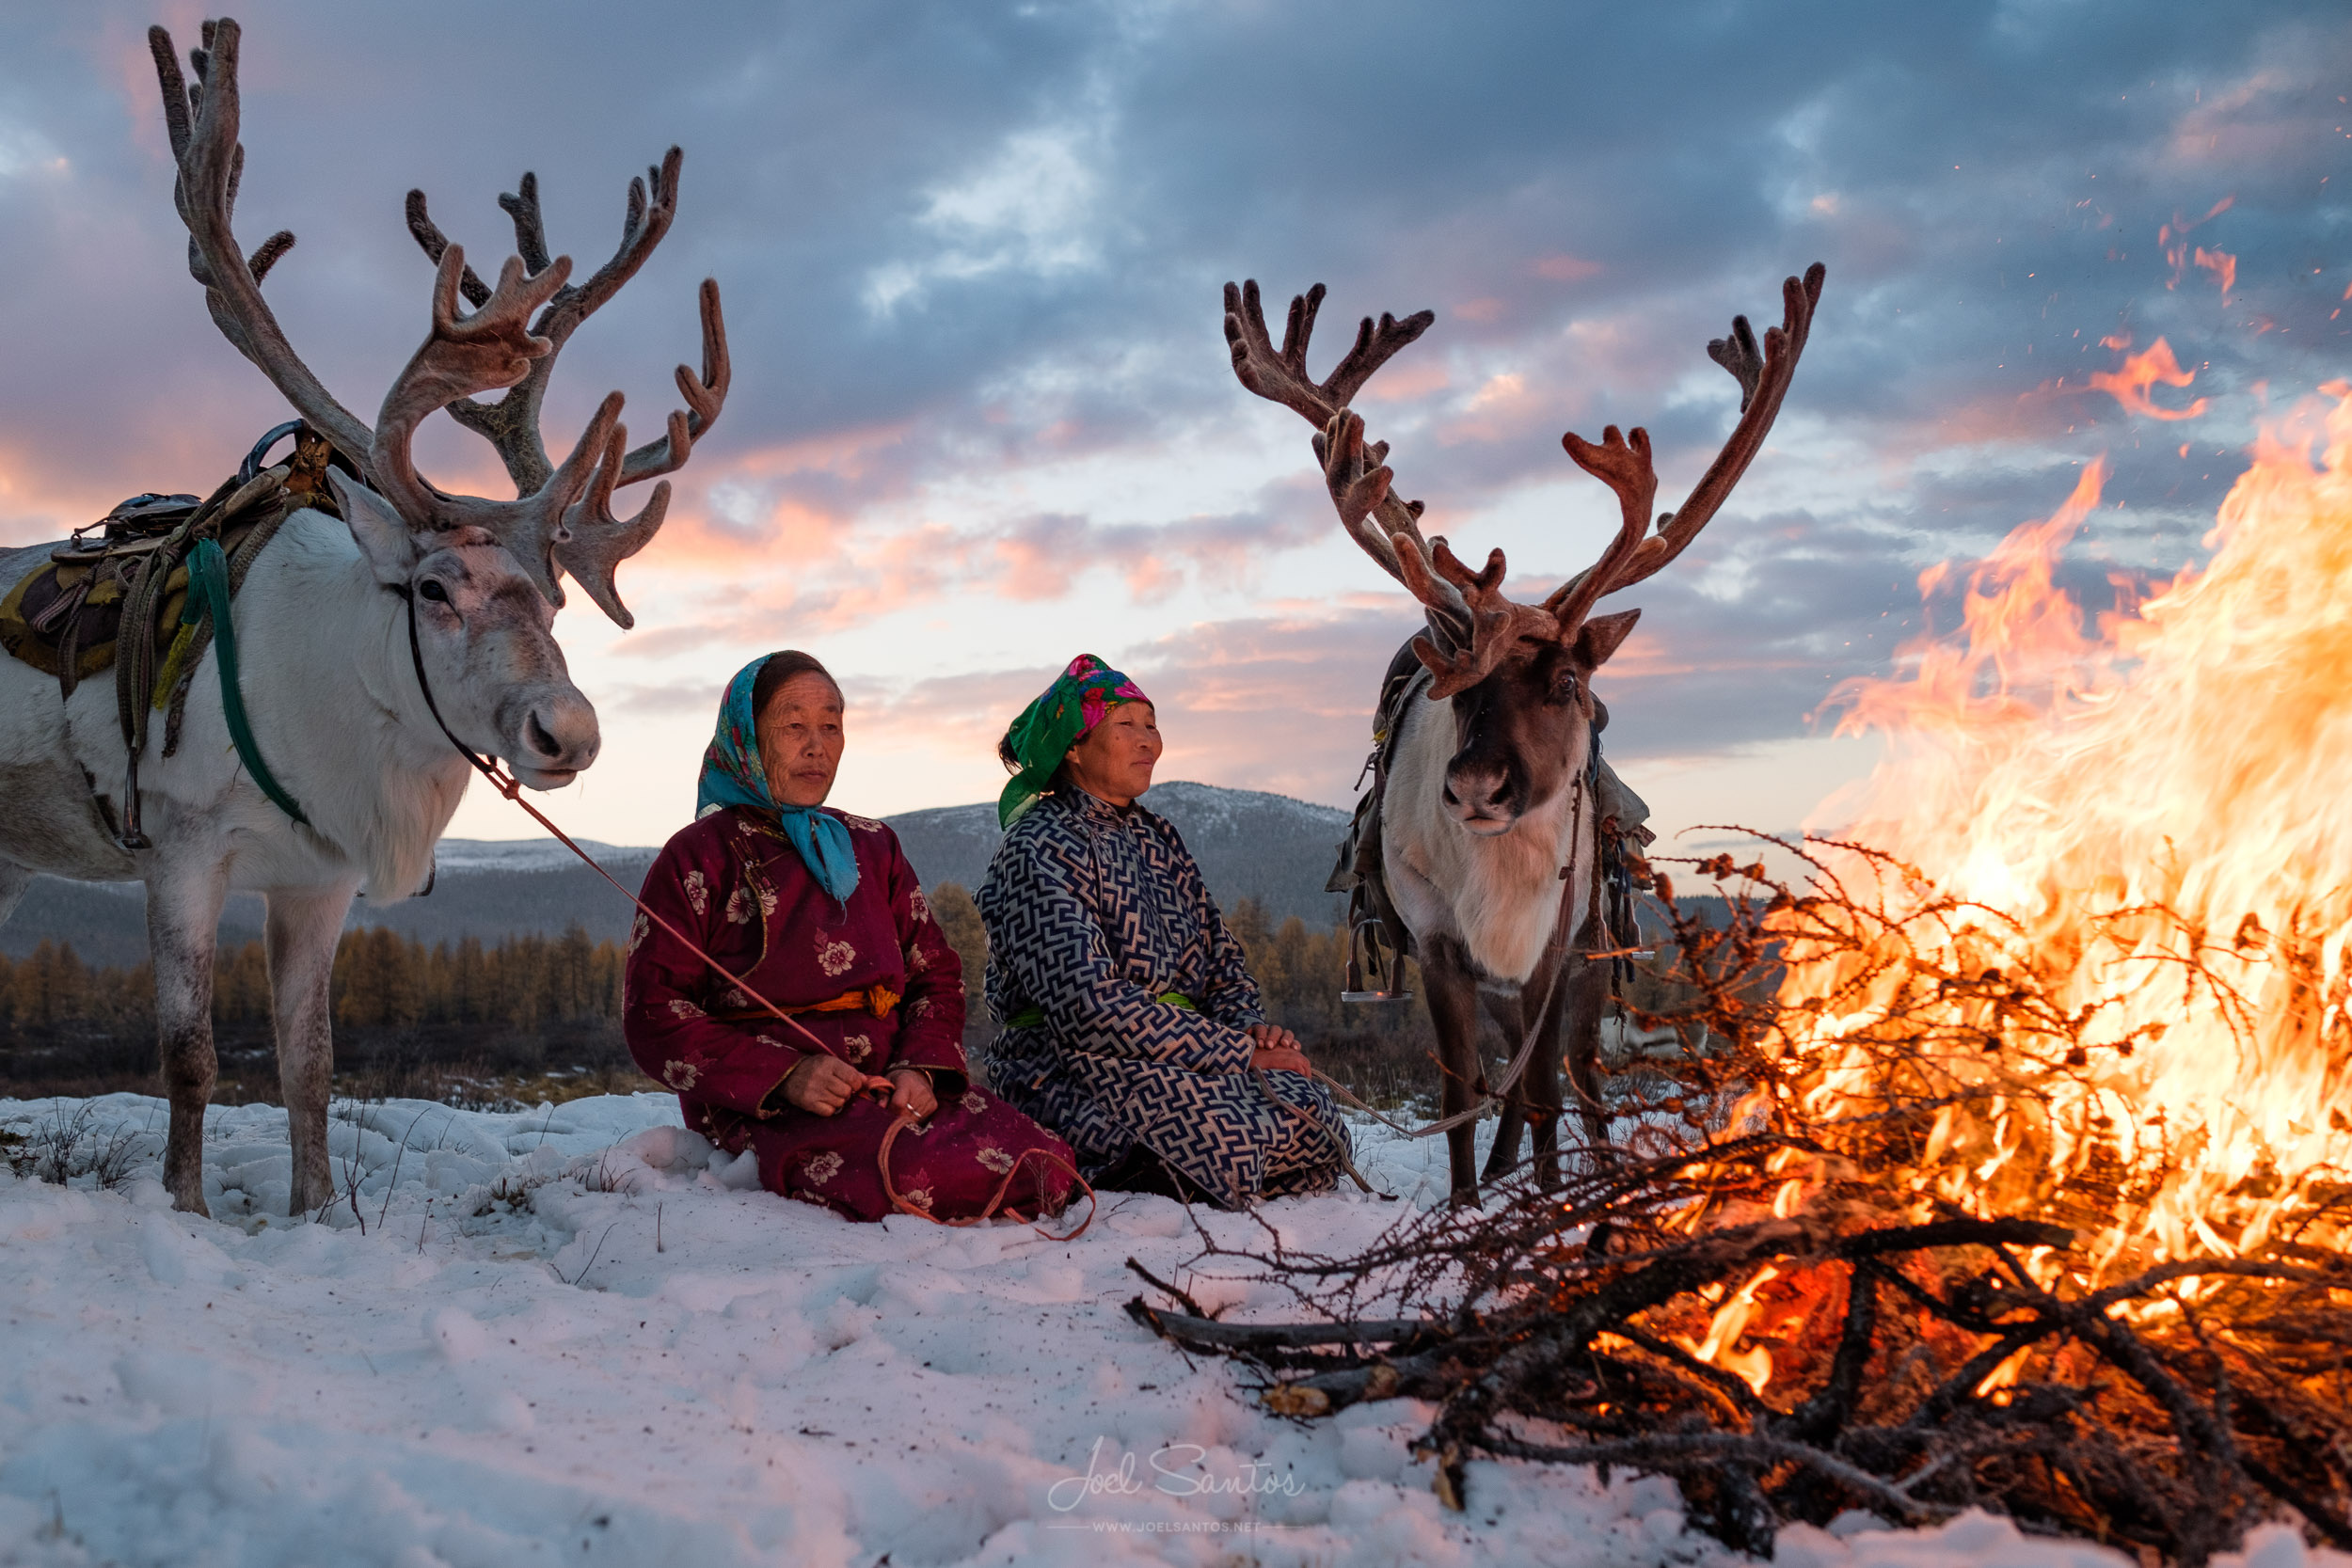 Purev and Buyantogtokh enjoy the warmth of the fire in the cold Mongolian weather